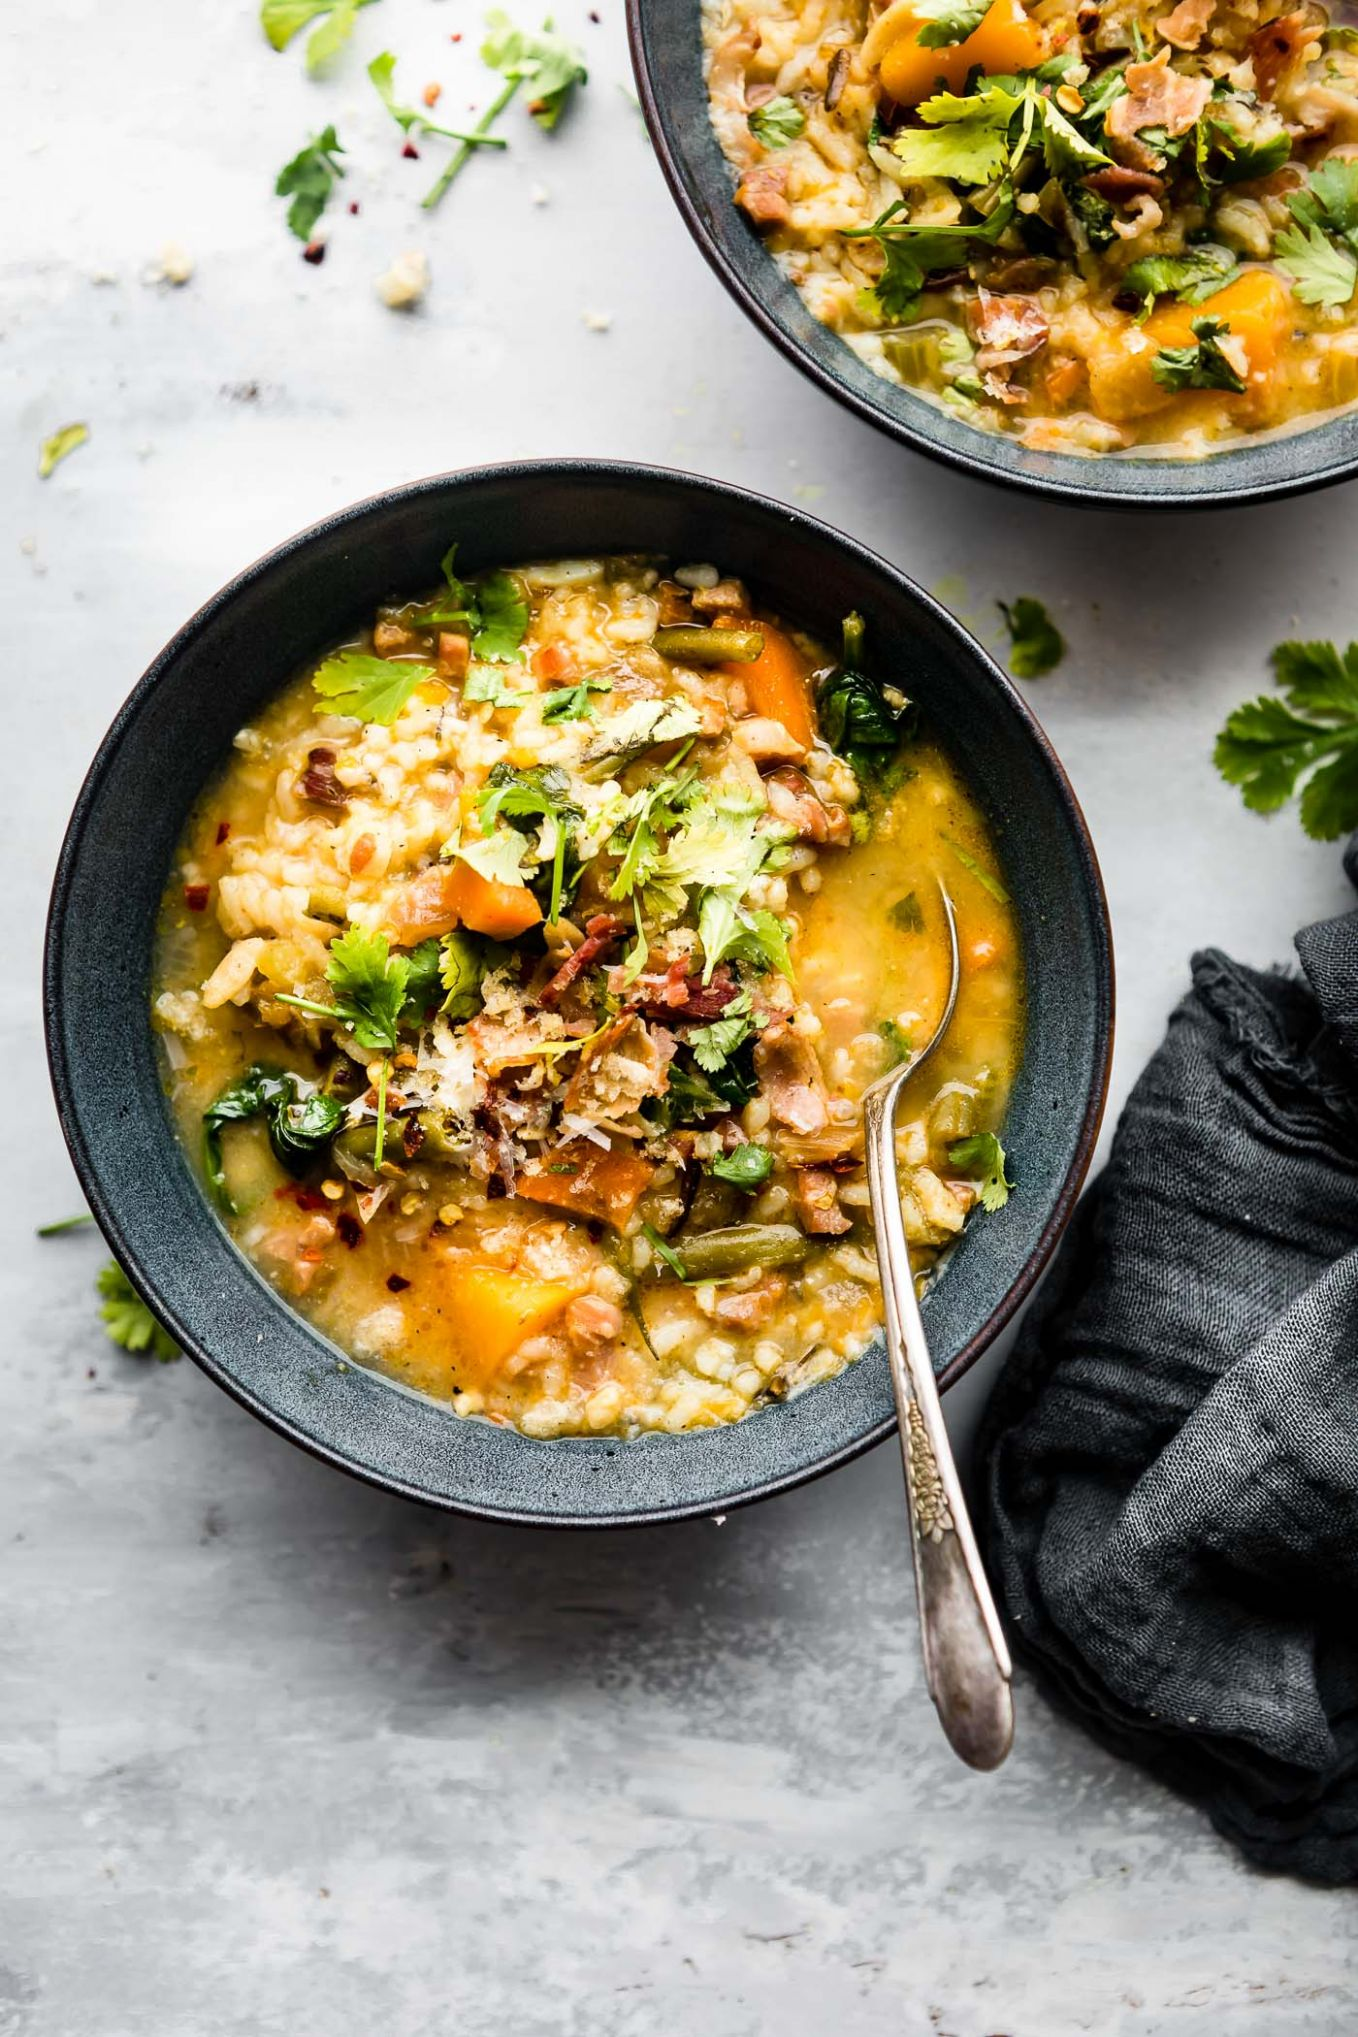 Everything But the Kitchen Sink Soup (Instant Pot or Stove Top Recipe) - Healthy Recipes Good For Leftovers